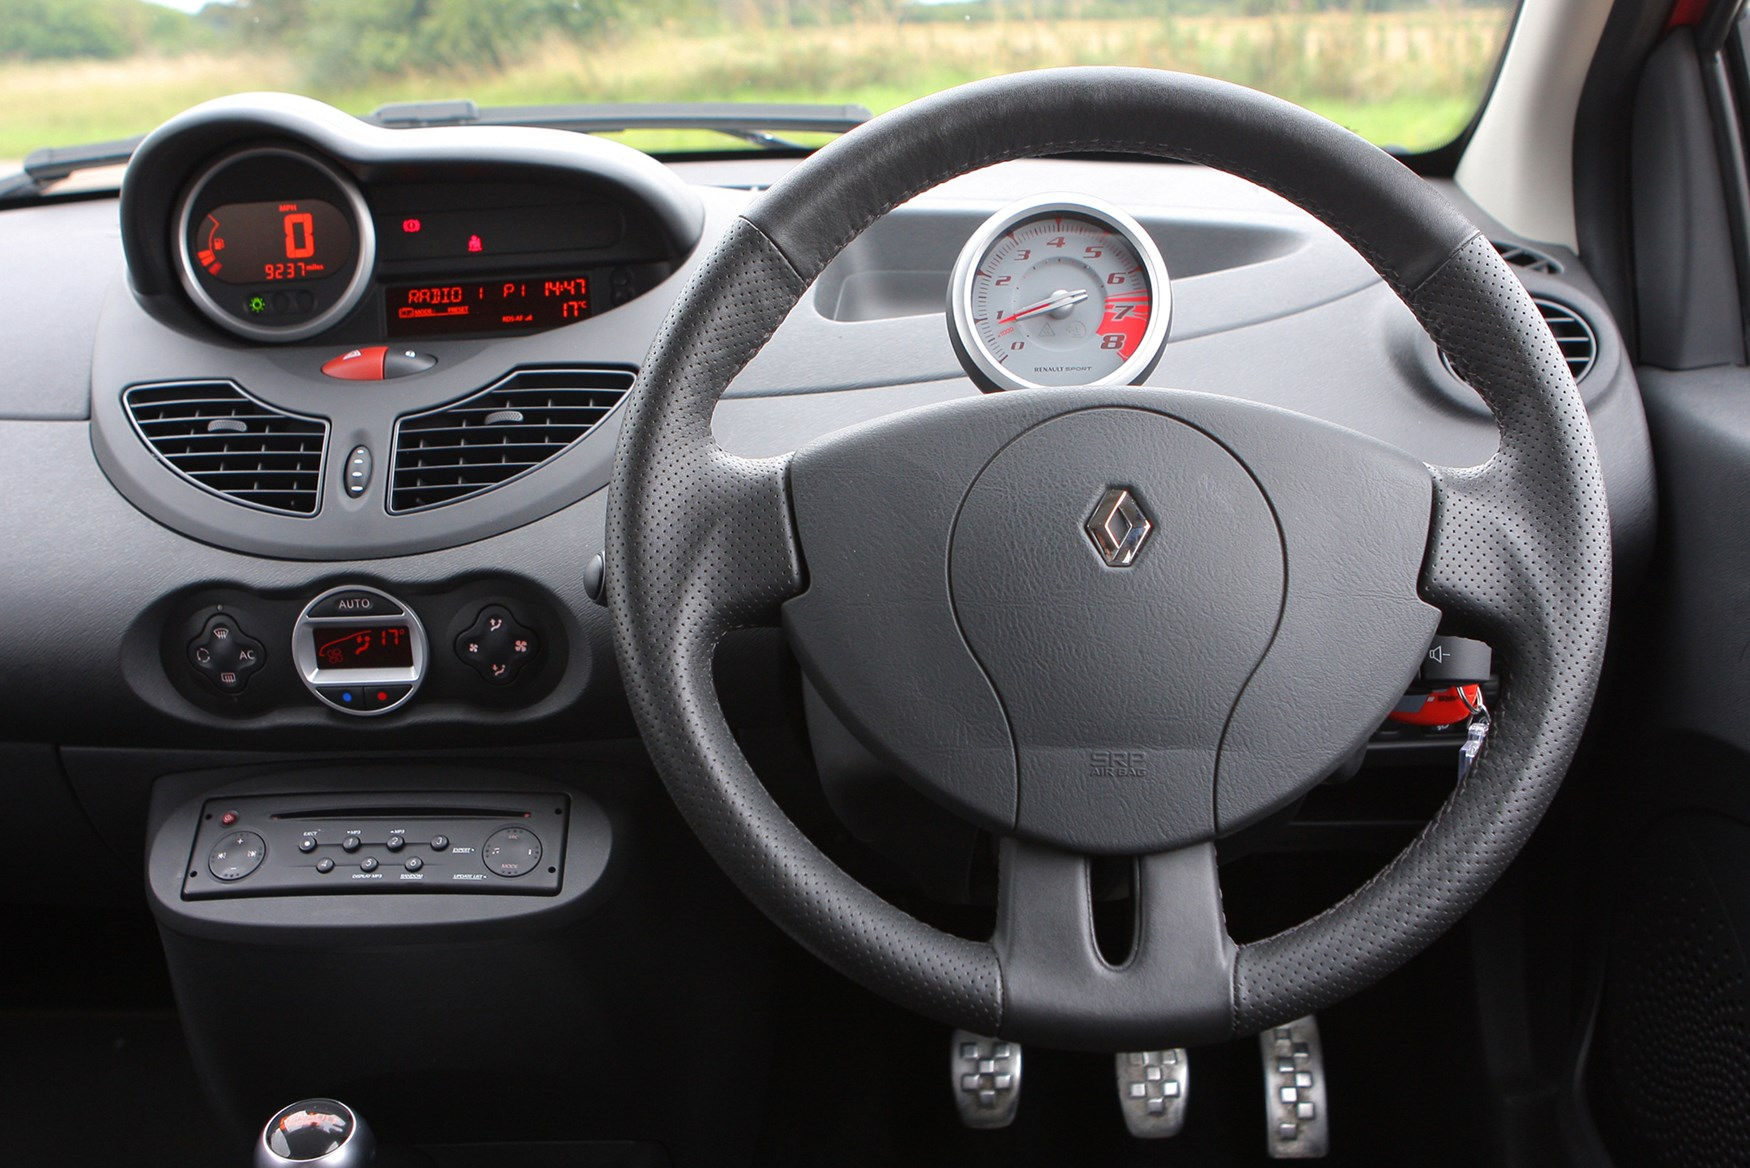 Renault Twingo Renaultsport Review (2008 - 2013) | Parkers